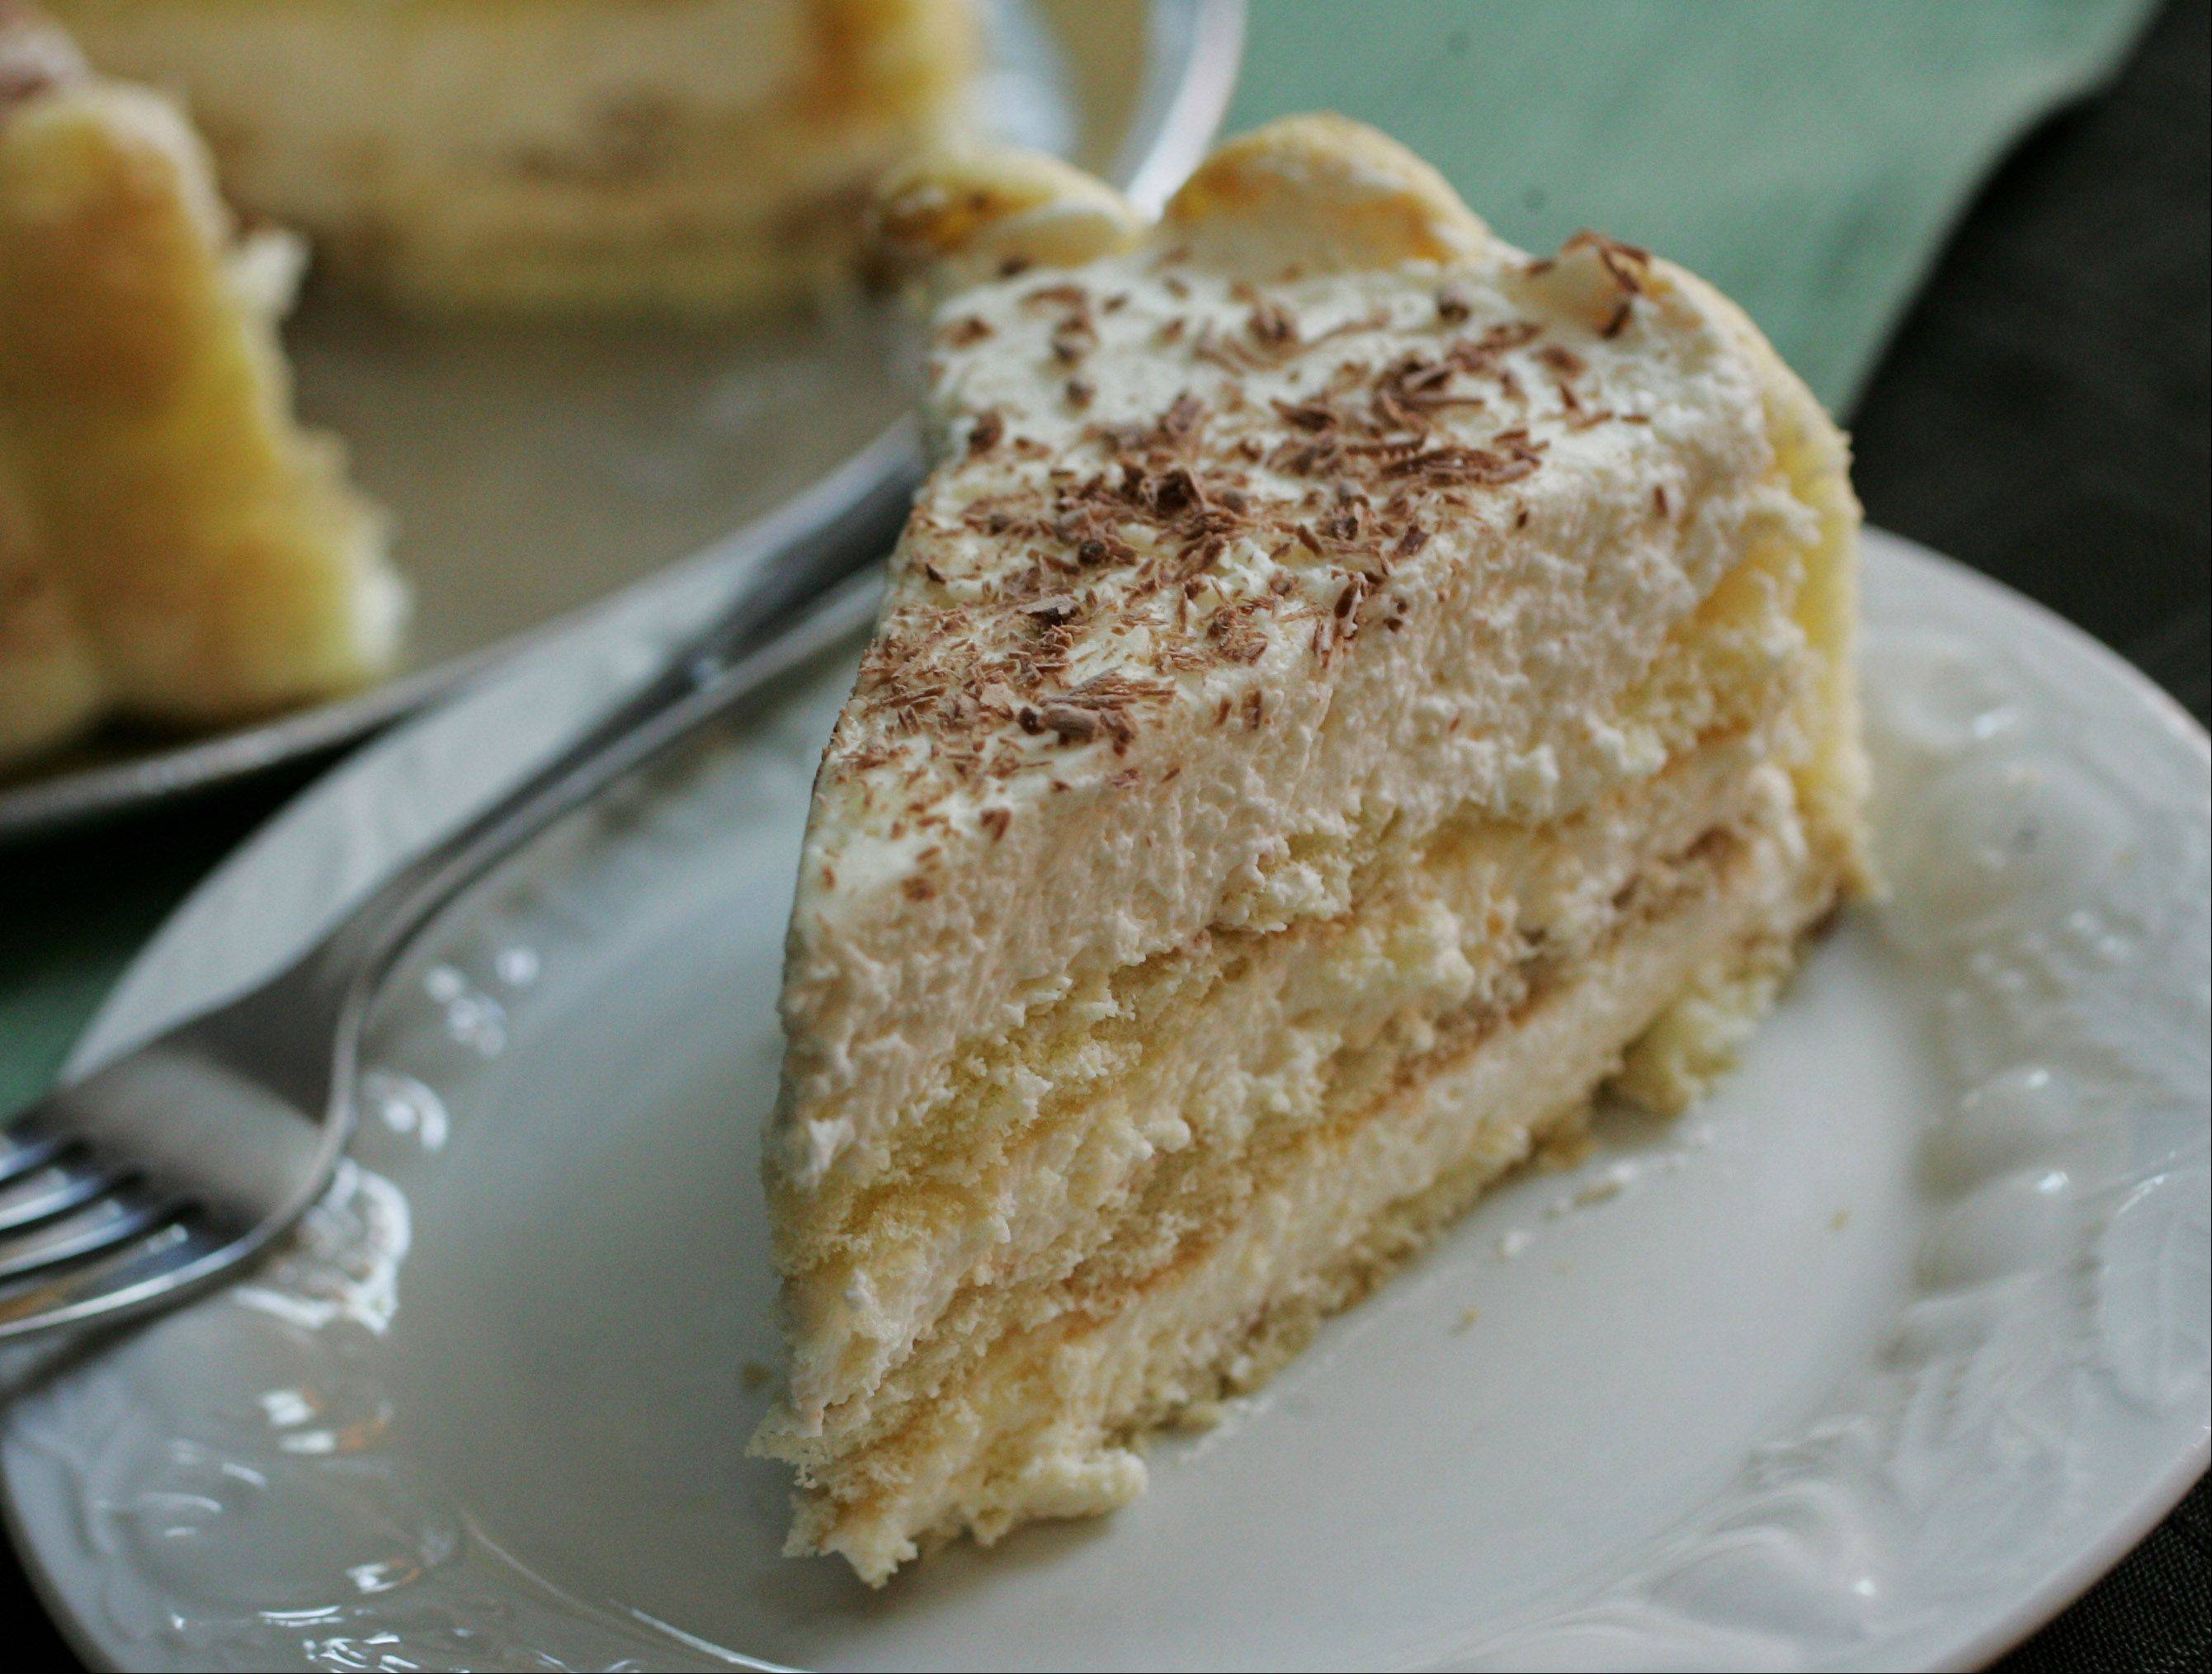 Patricia Kutchins counts tiramisu as one of her most requested desserts.